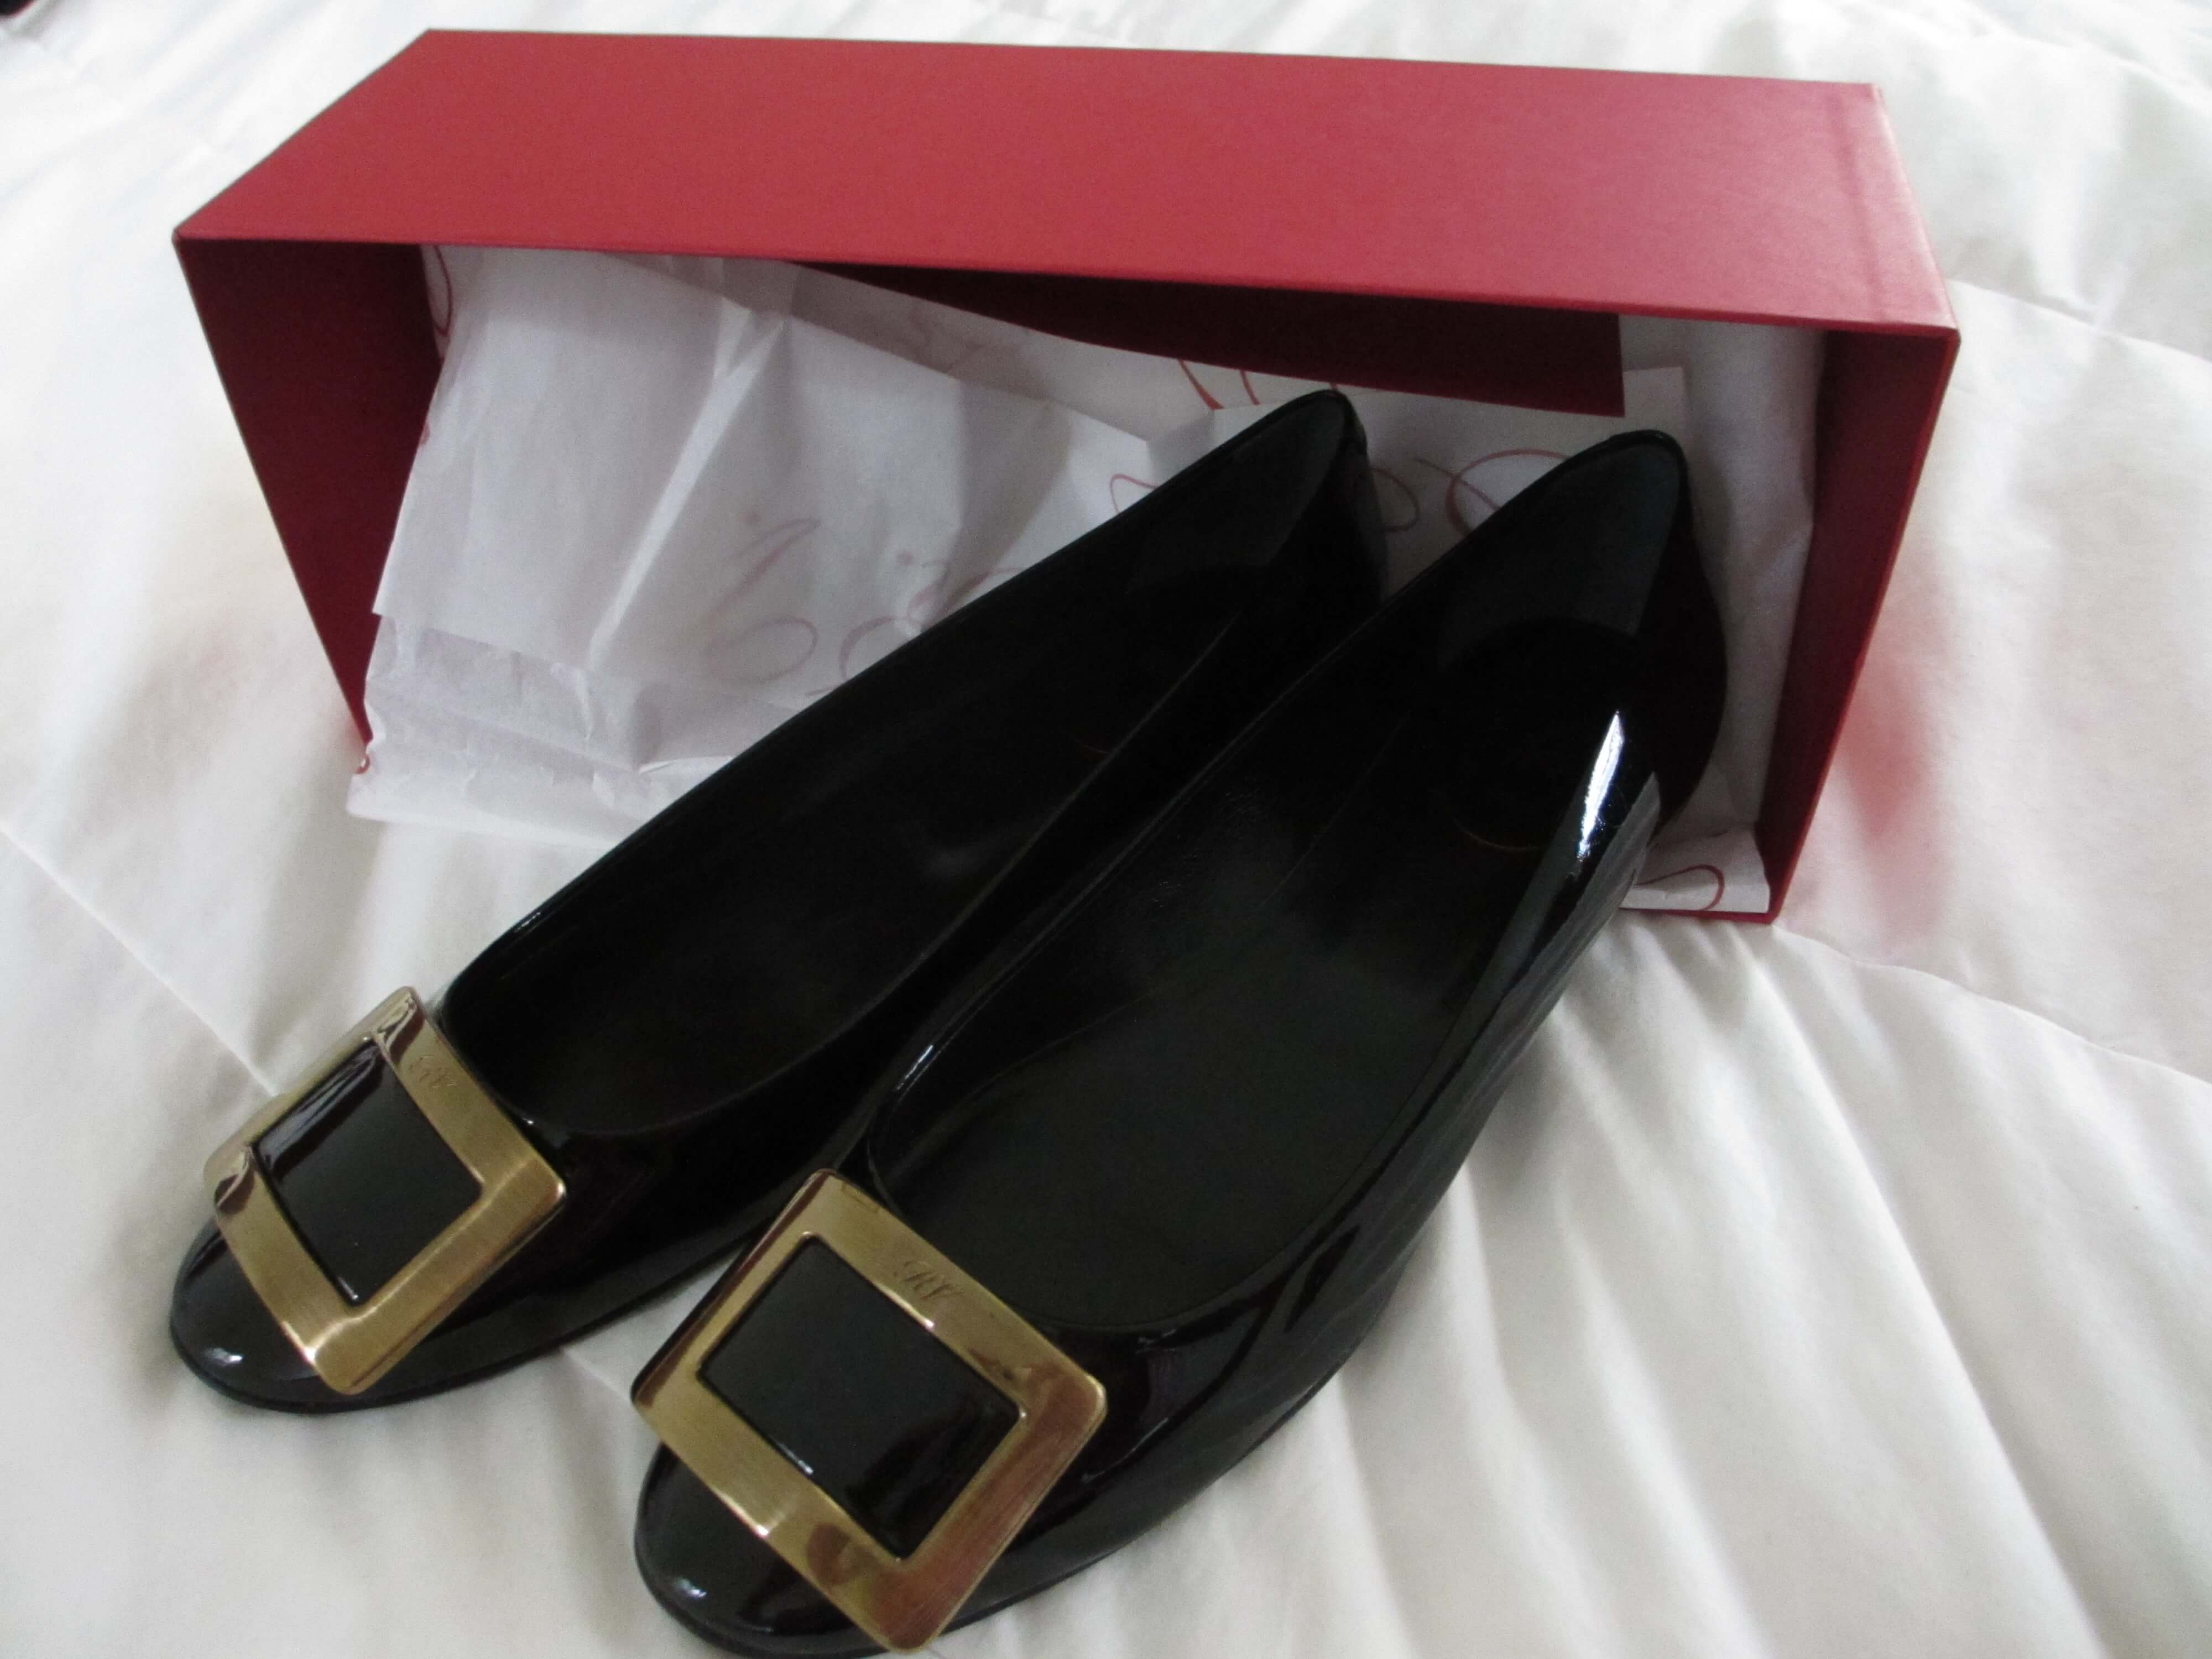 travel, travel tips, travel planning, a pair of Roger Vivier belle de jour flats with their box